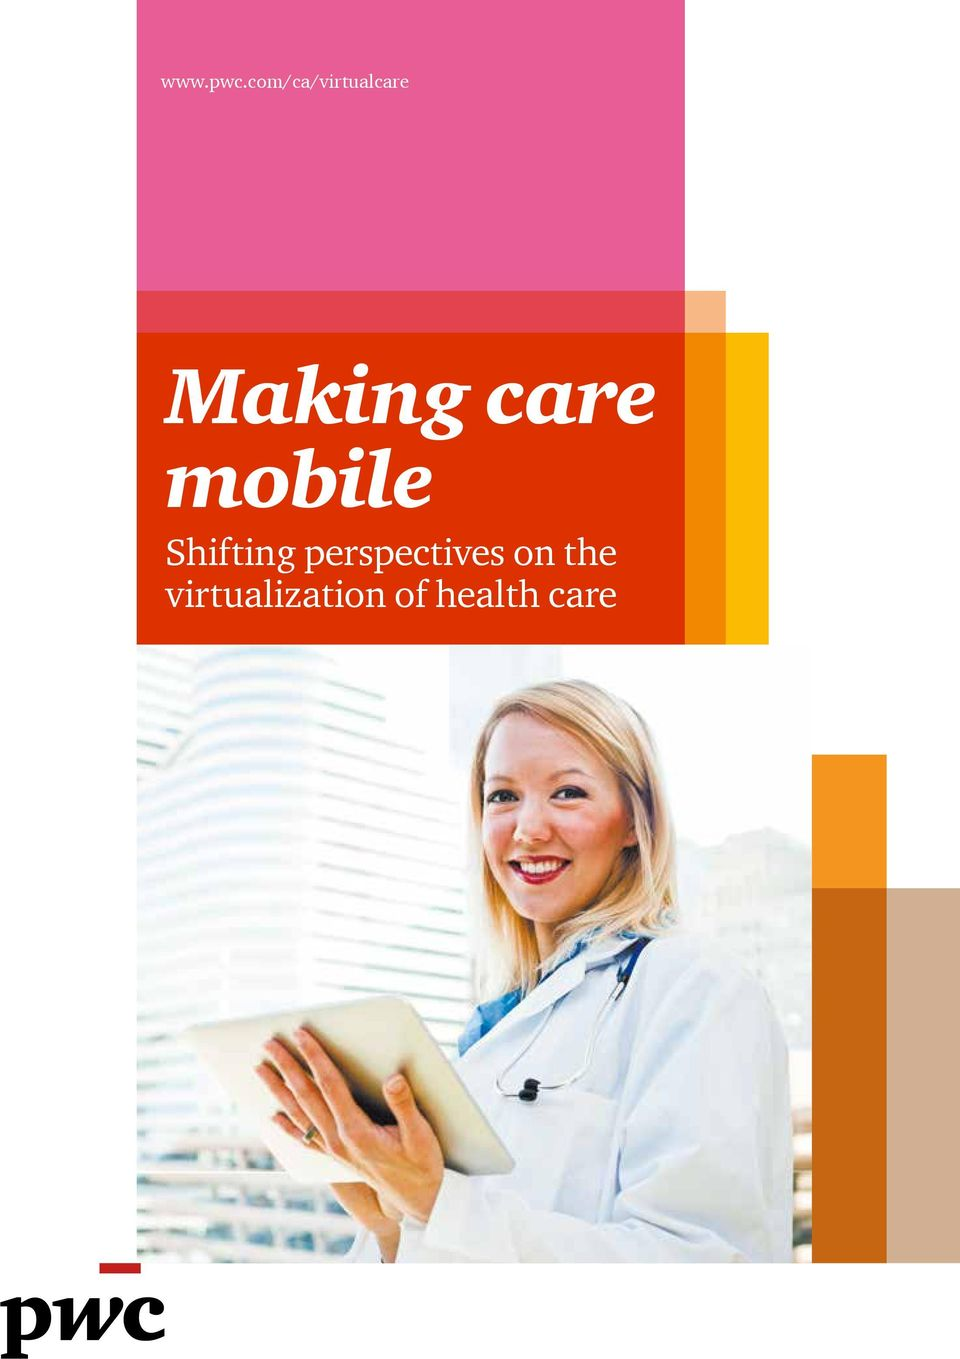 care mobile Shifting